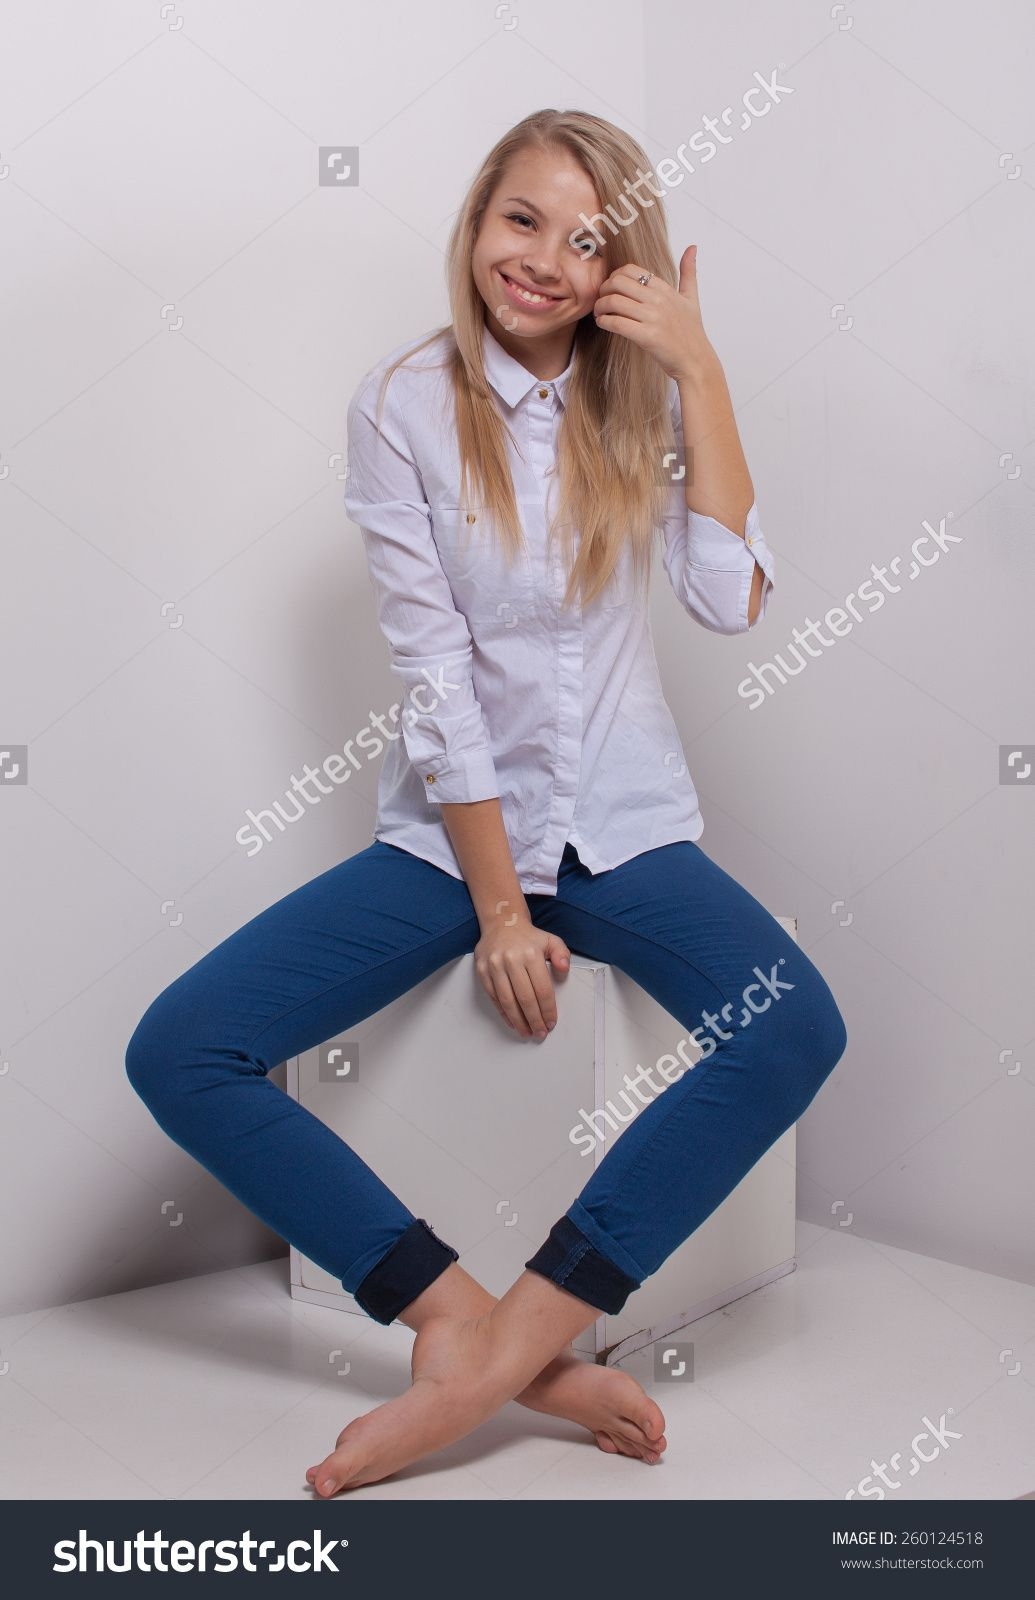 Blonde Young Woman In Ragged Jeans And Vest Sitting